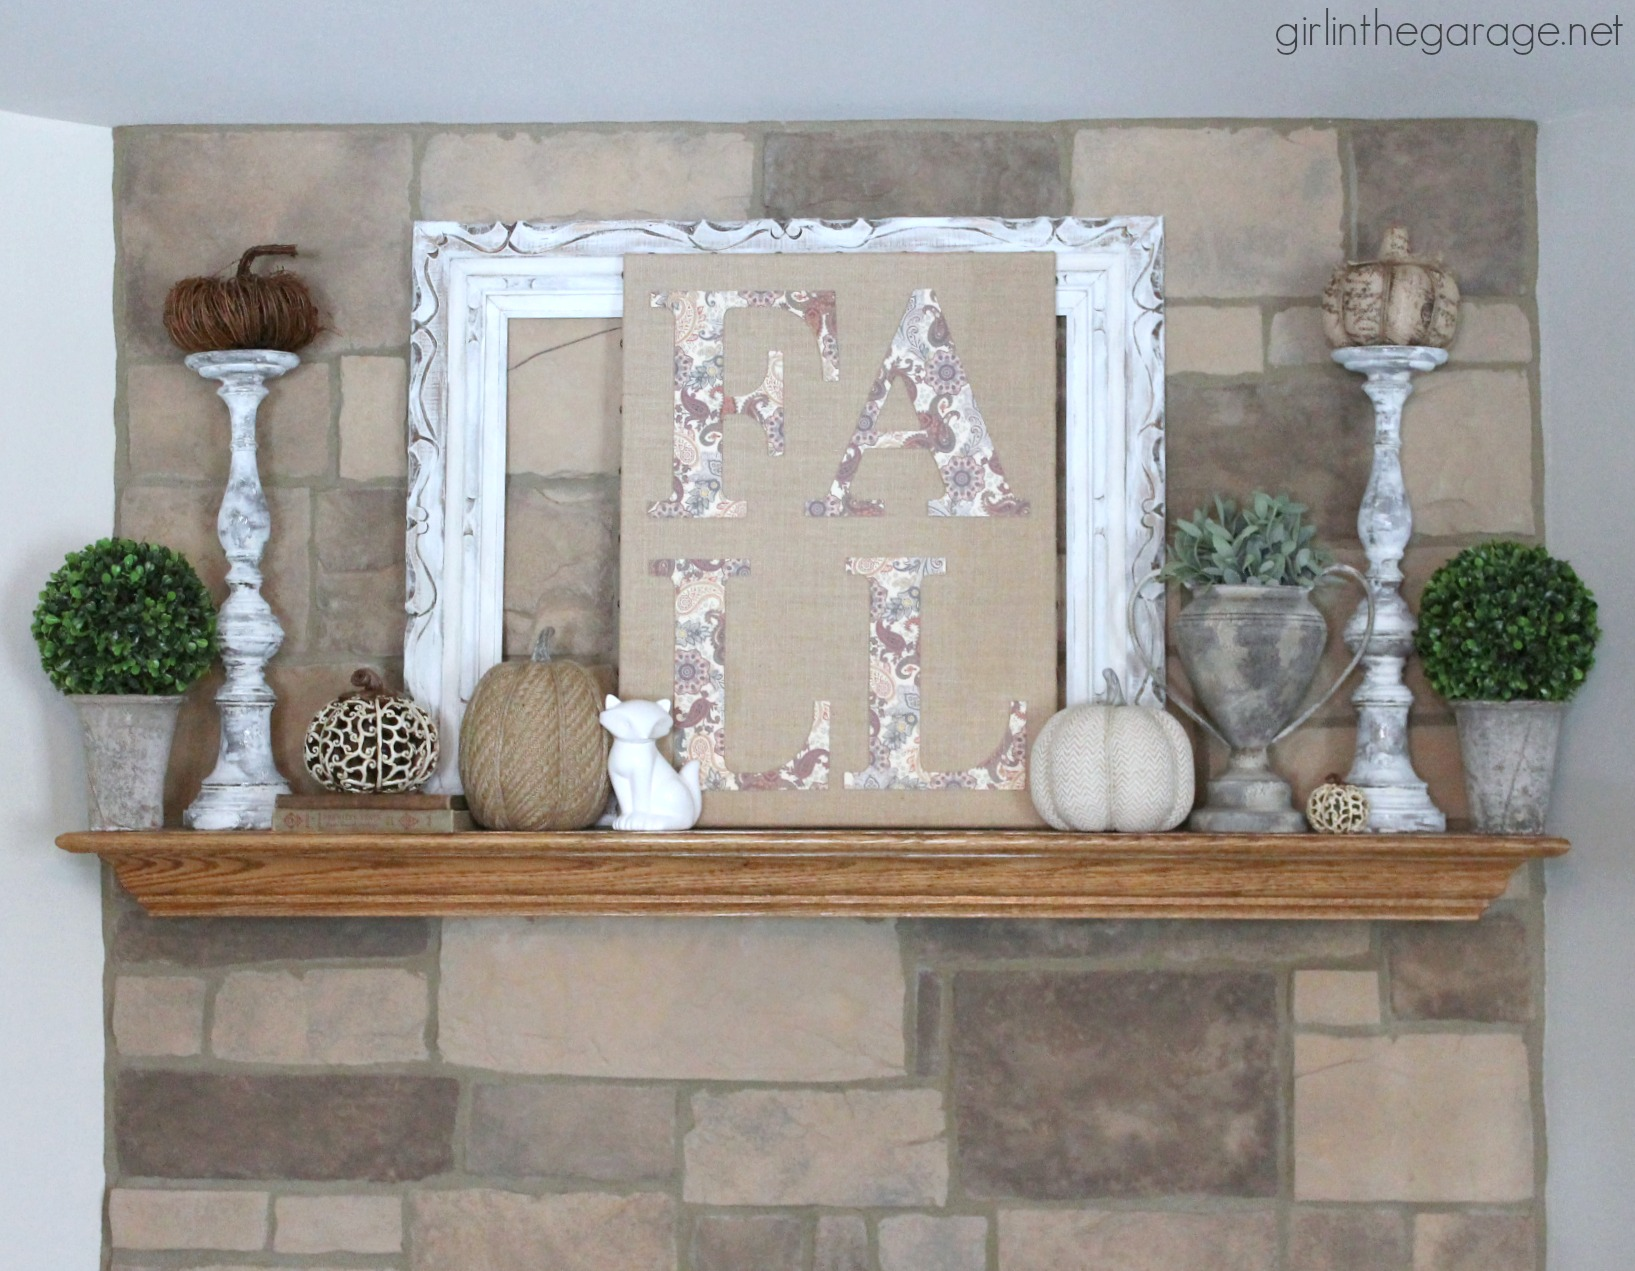 Neutral fall mantel decorating ideas - Girl in the Garage